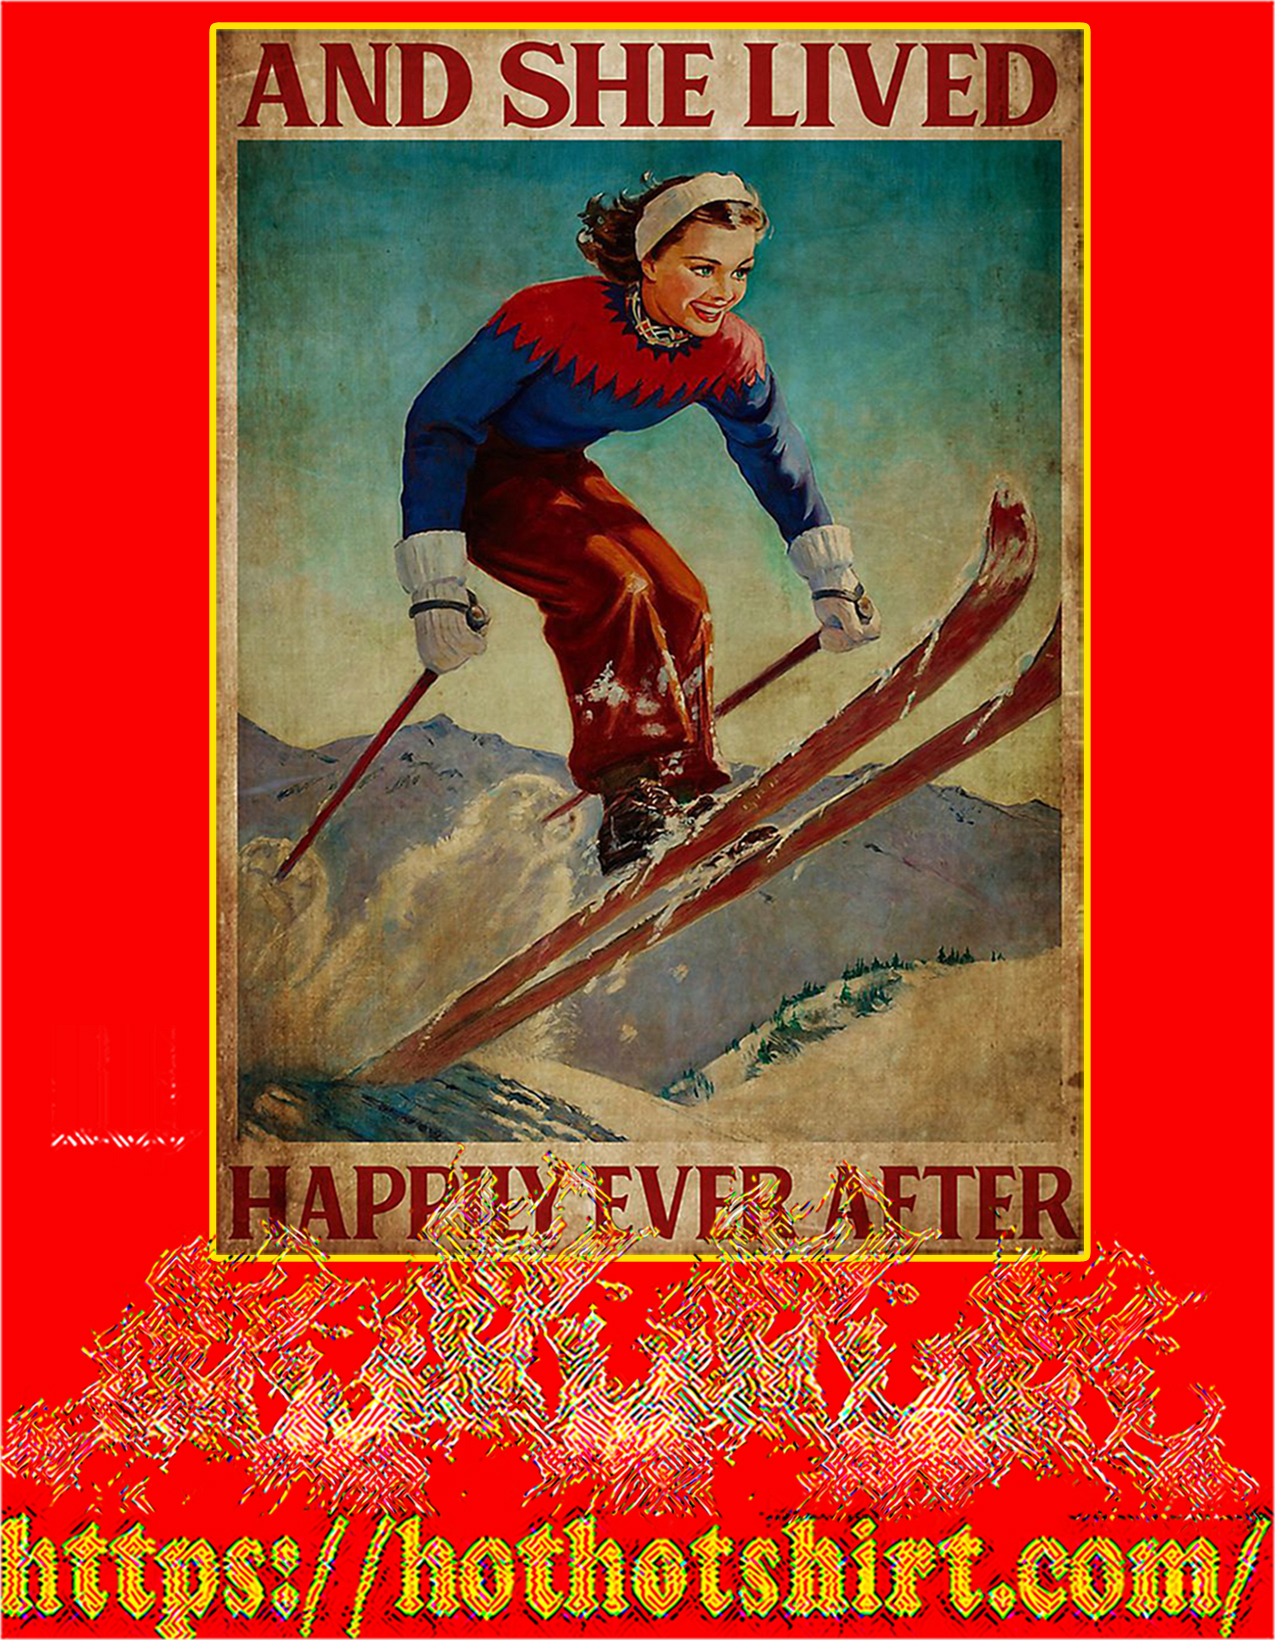 Skiing and she lived happily ever after poster - A2